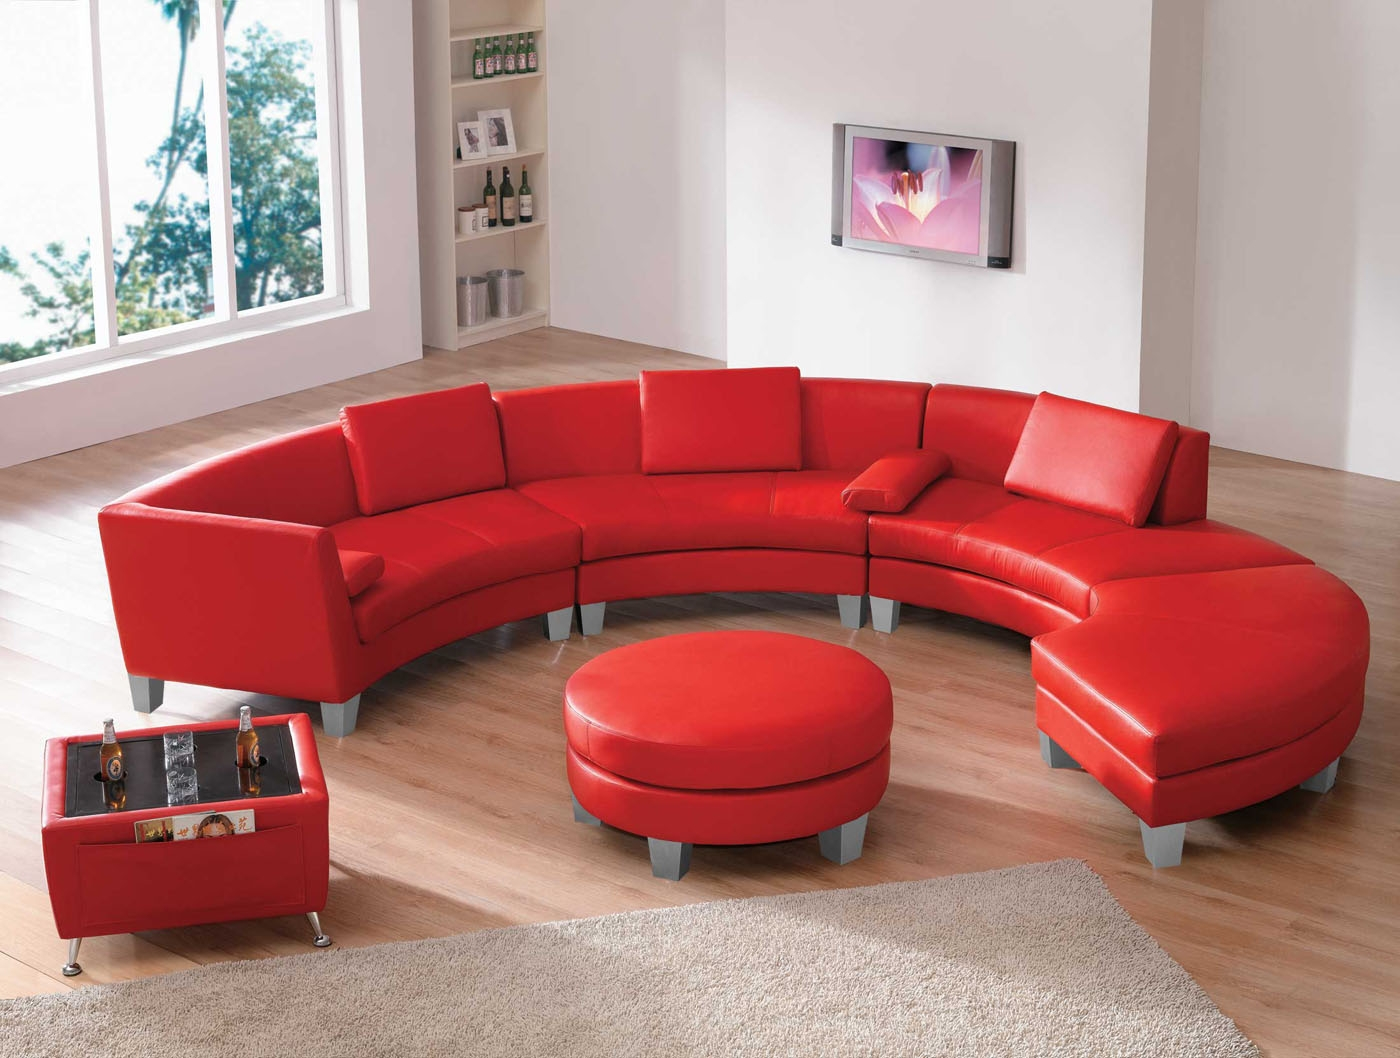 Sofas Center Macy Redr Sectional Sofasred Sofa With Chaise In Red Sofas And Chairs (Image 13 of 15)